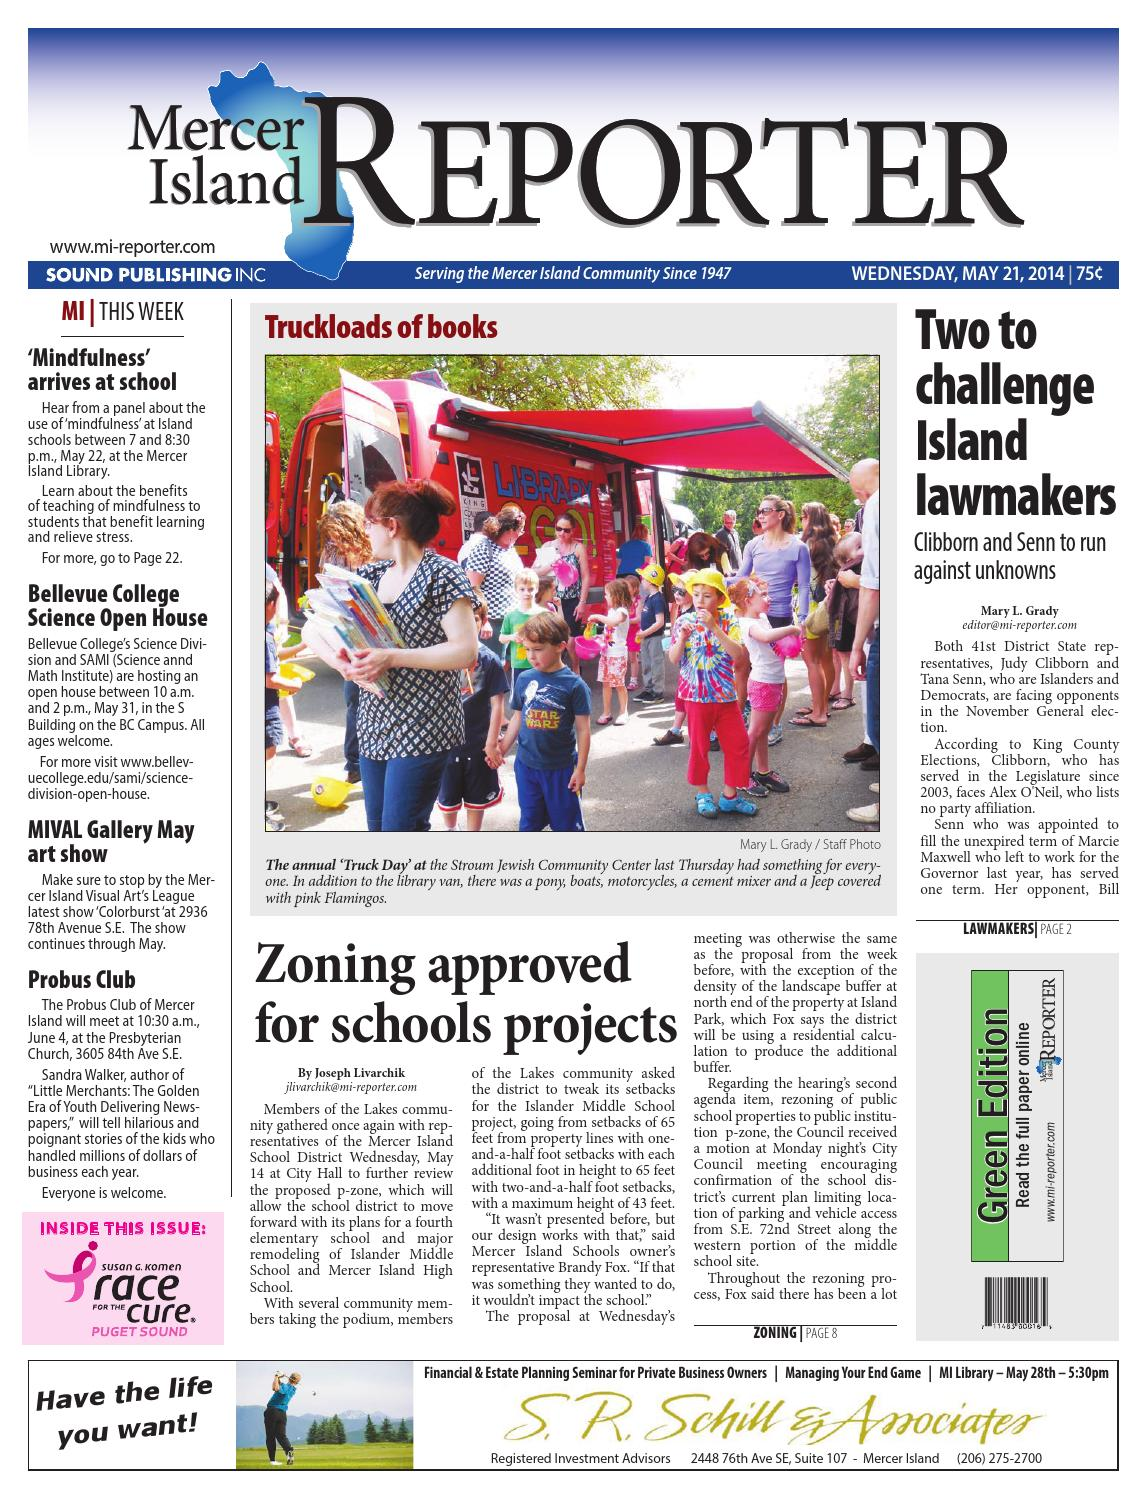 mercer island reporter may 21 2014 by sound publishing issuu